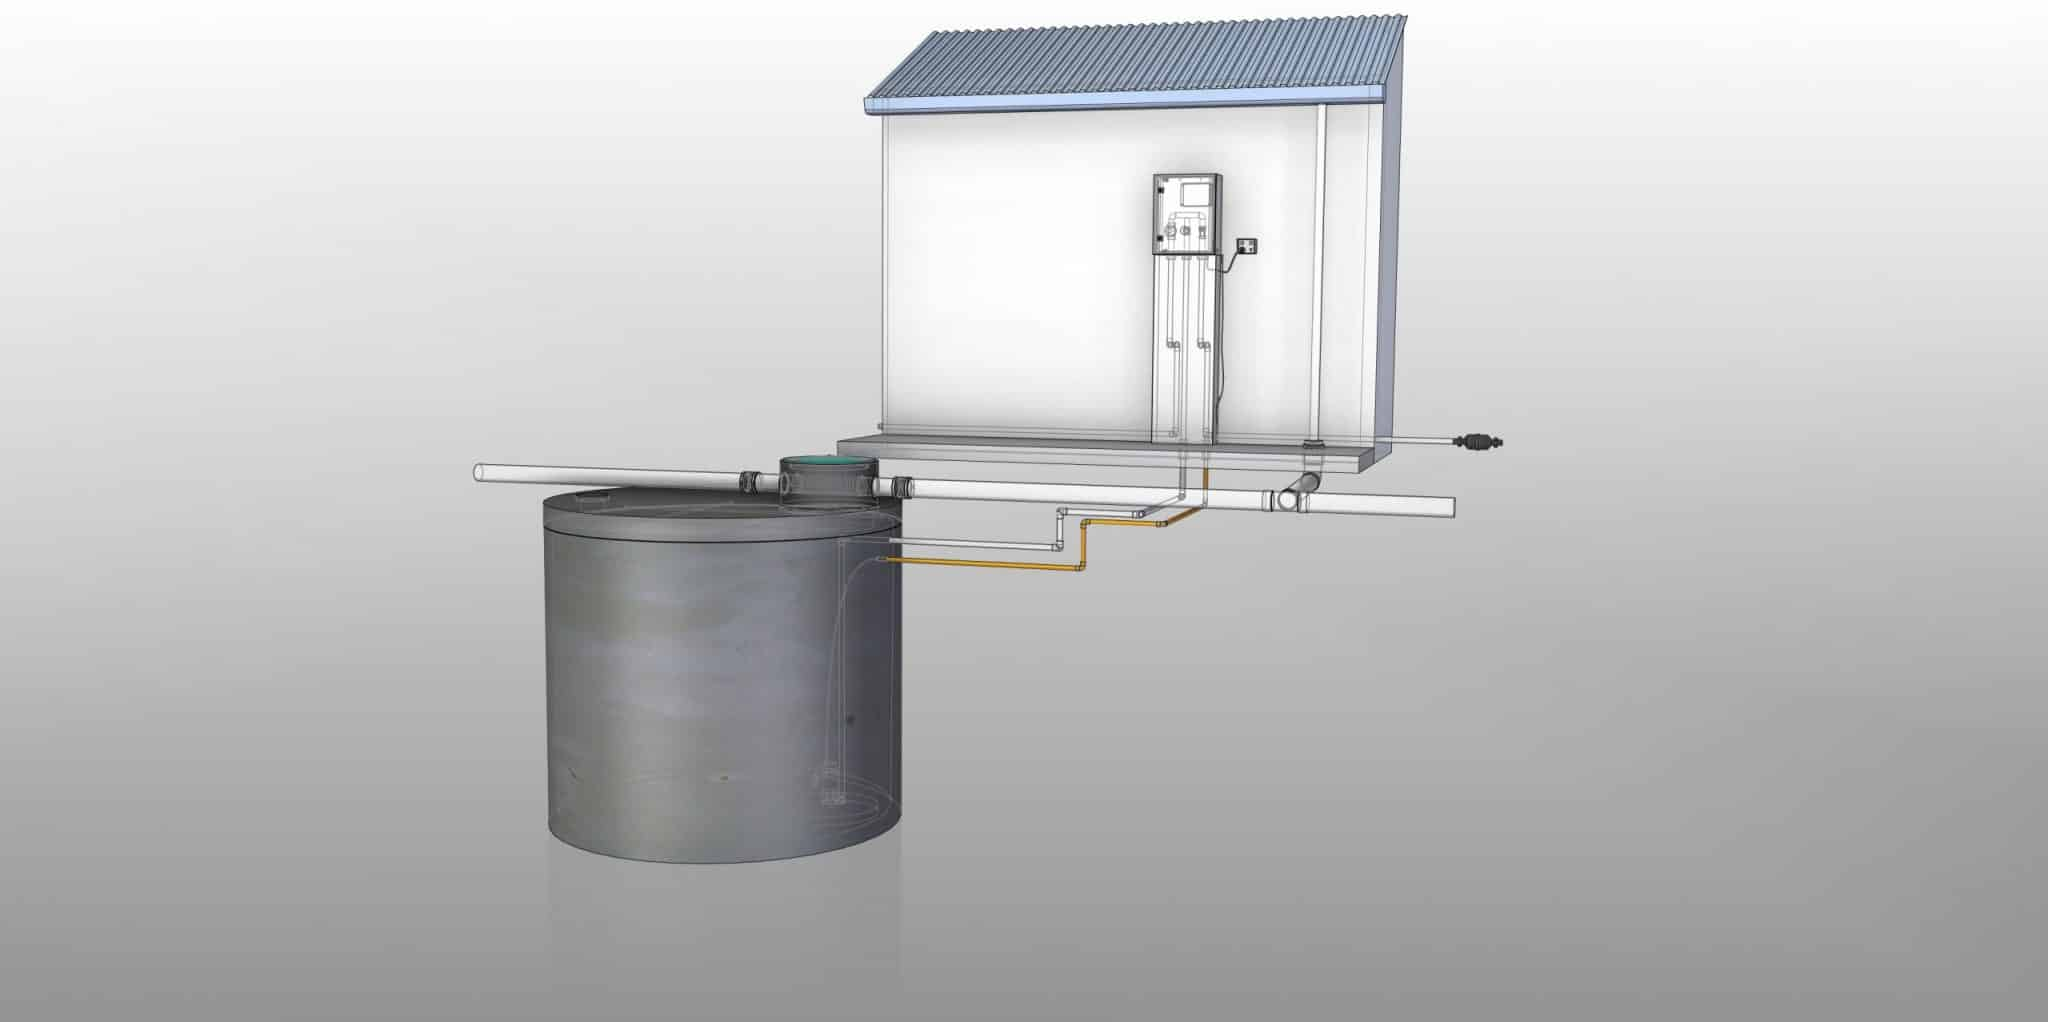 What to know all about Rainwater Tank Installation?